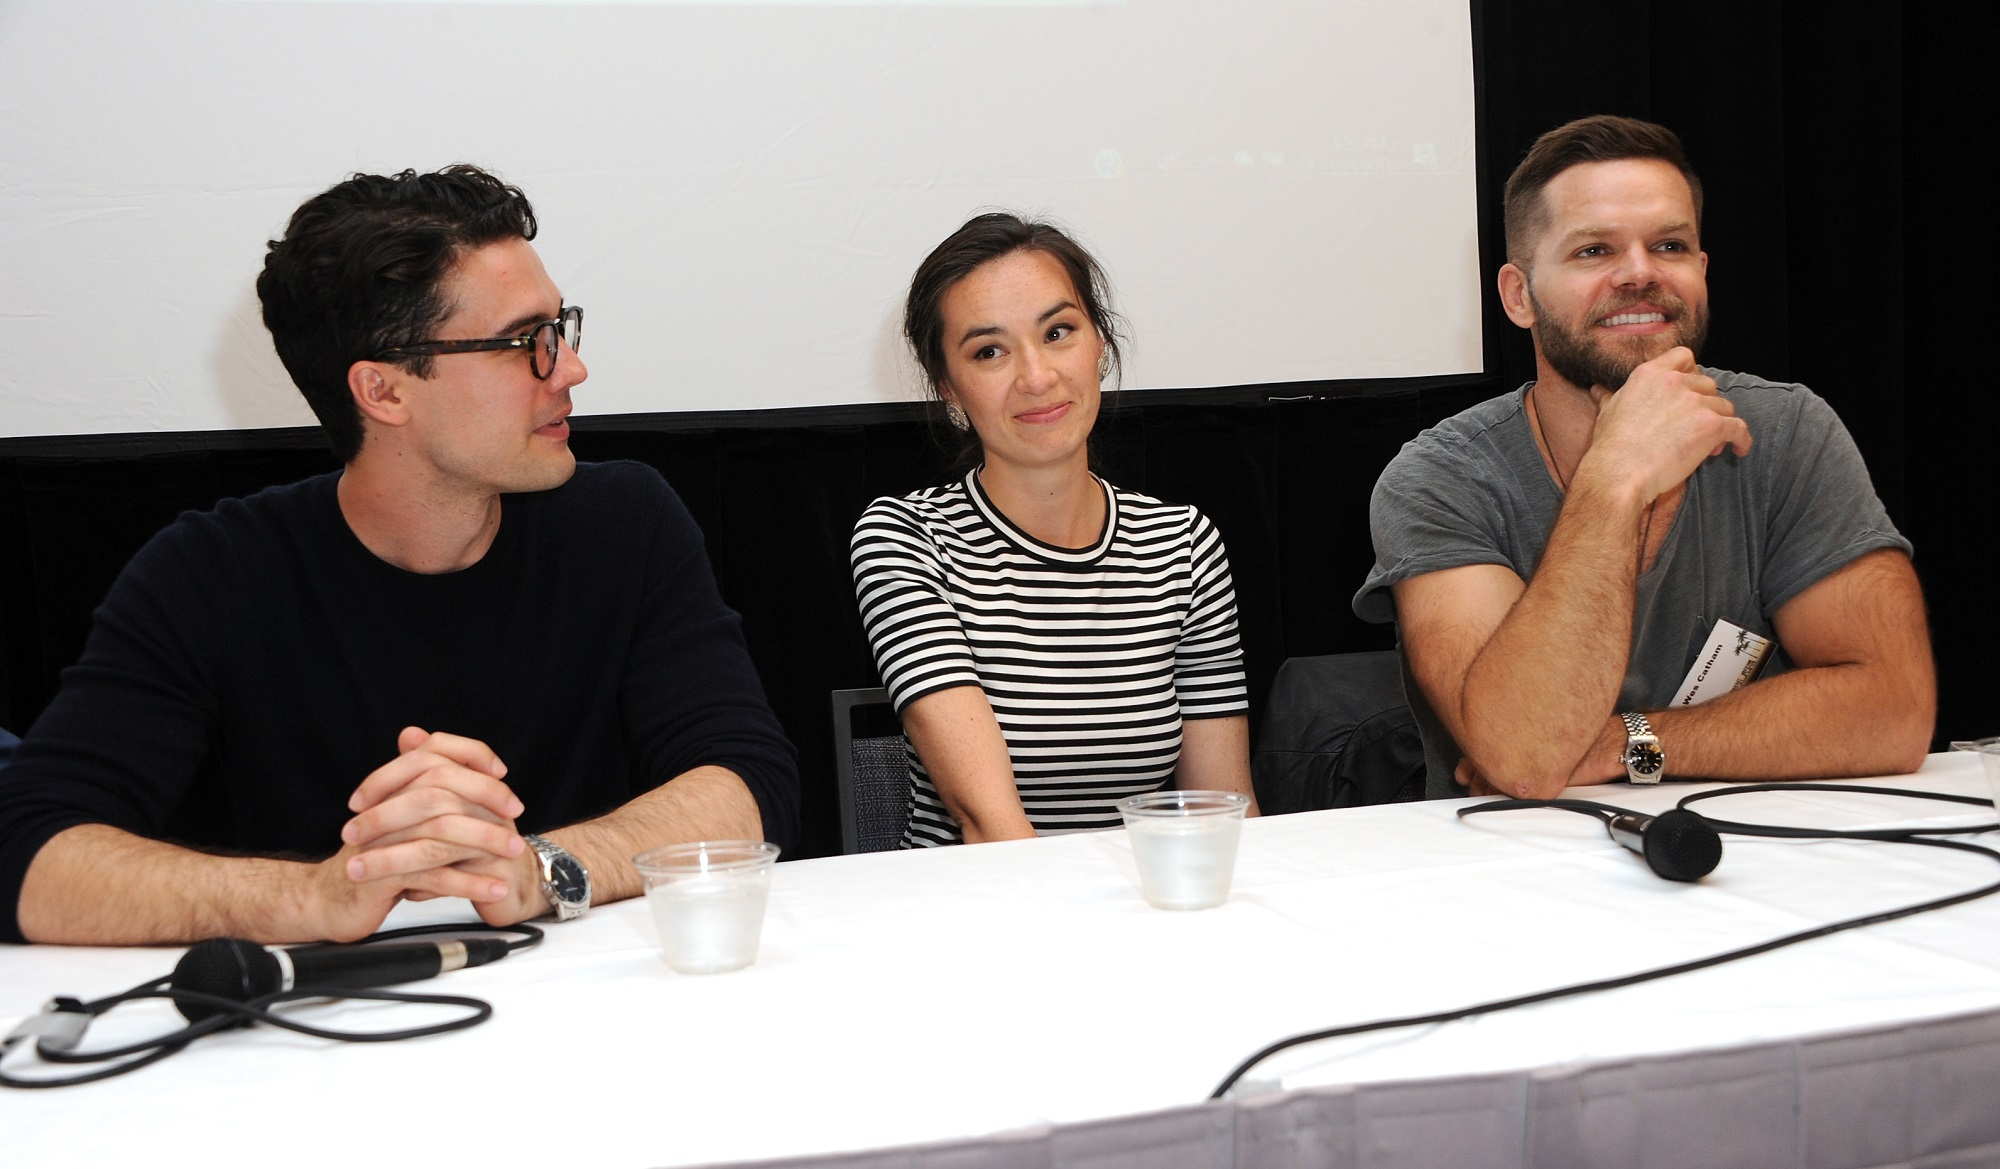 Steven Strait, Cara Gee, and Wes Chatham of The Expanse